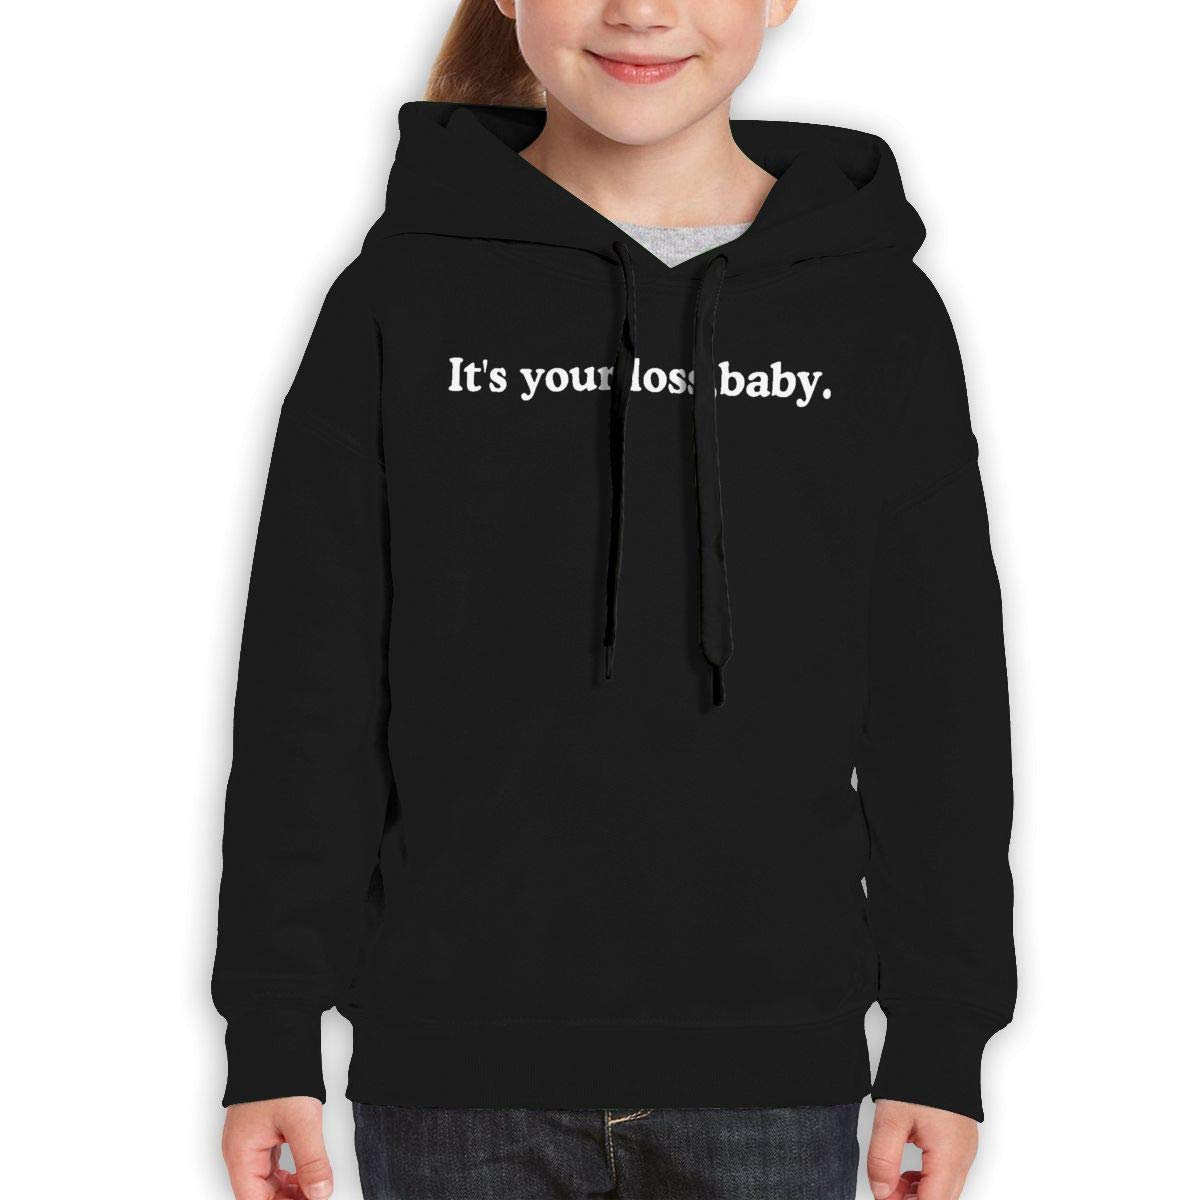 Boys Girls Its Your Loss Baby Teen Youth Sweater Black